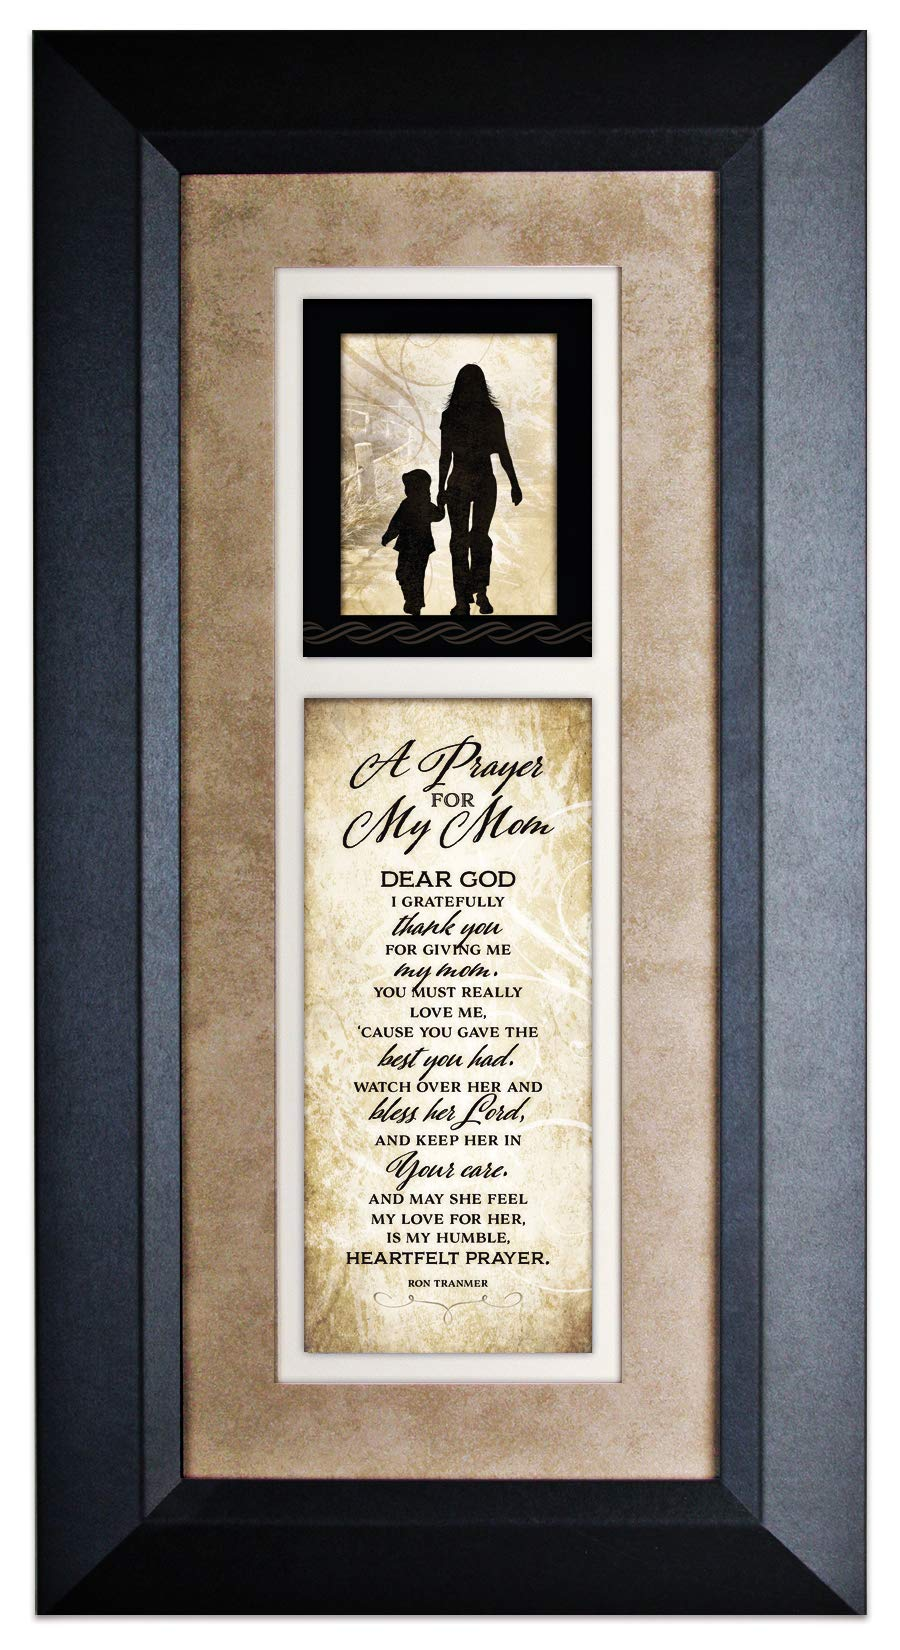 A Prayer for My Mom Wood Wall Art Frame Plaque | 8 inches x 16 inches | Hanger for Hanging | Dear God I Gratefully Thank You for Giving me My Mom | by Dexsa-James Lawrence by Dexsa